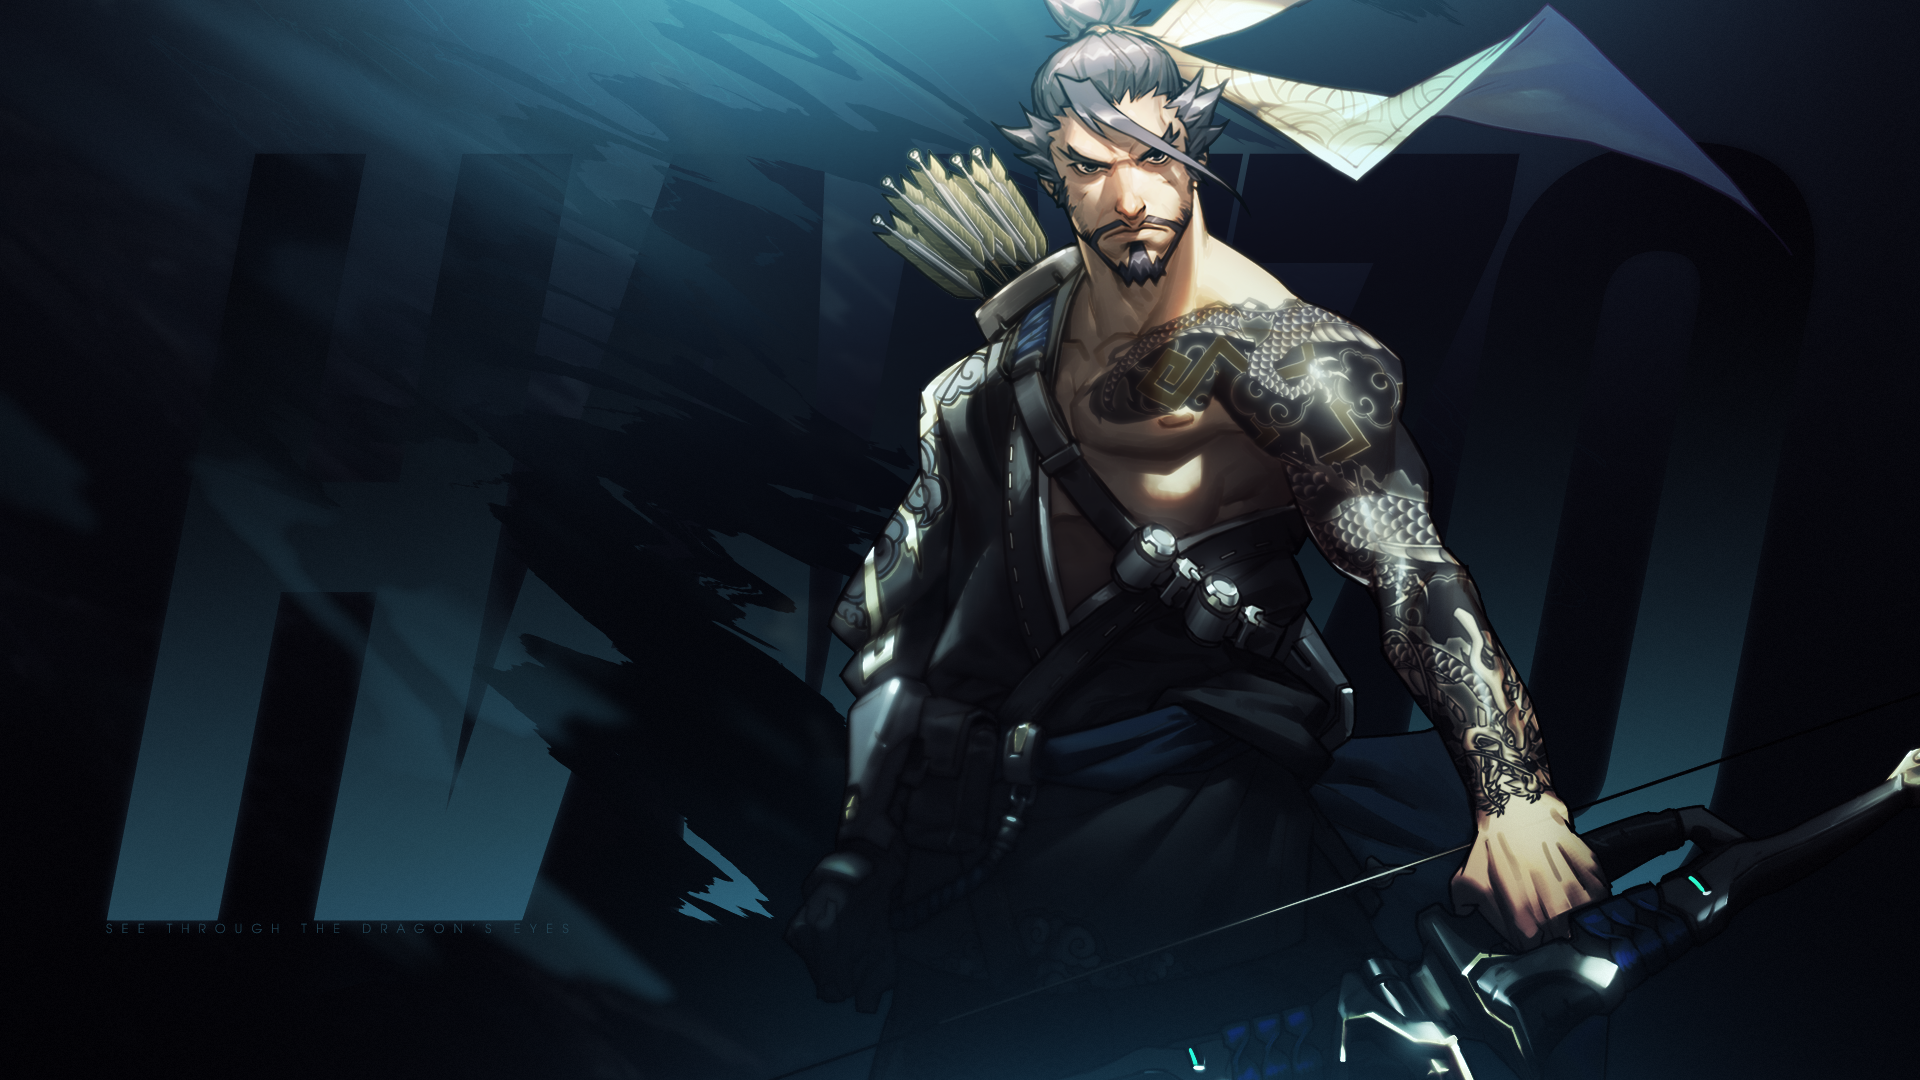 87 hanzo (overwatch) hd wallpapers | background images - wallpaper abyss